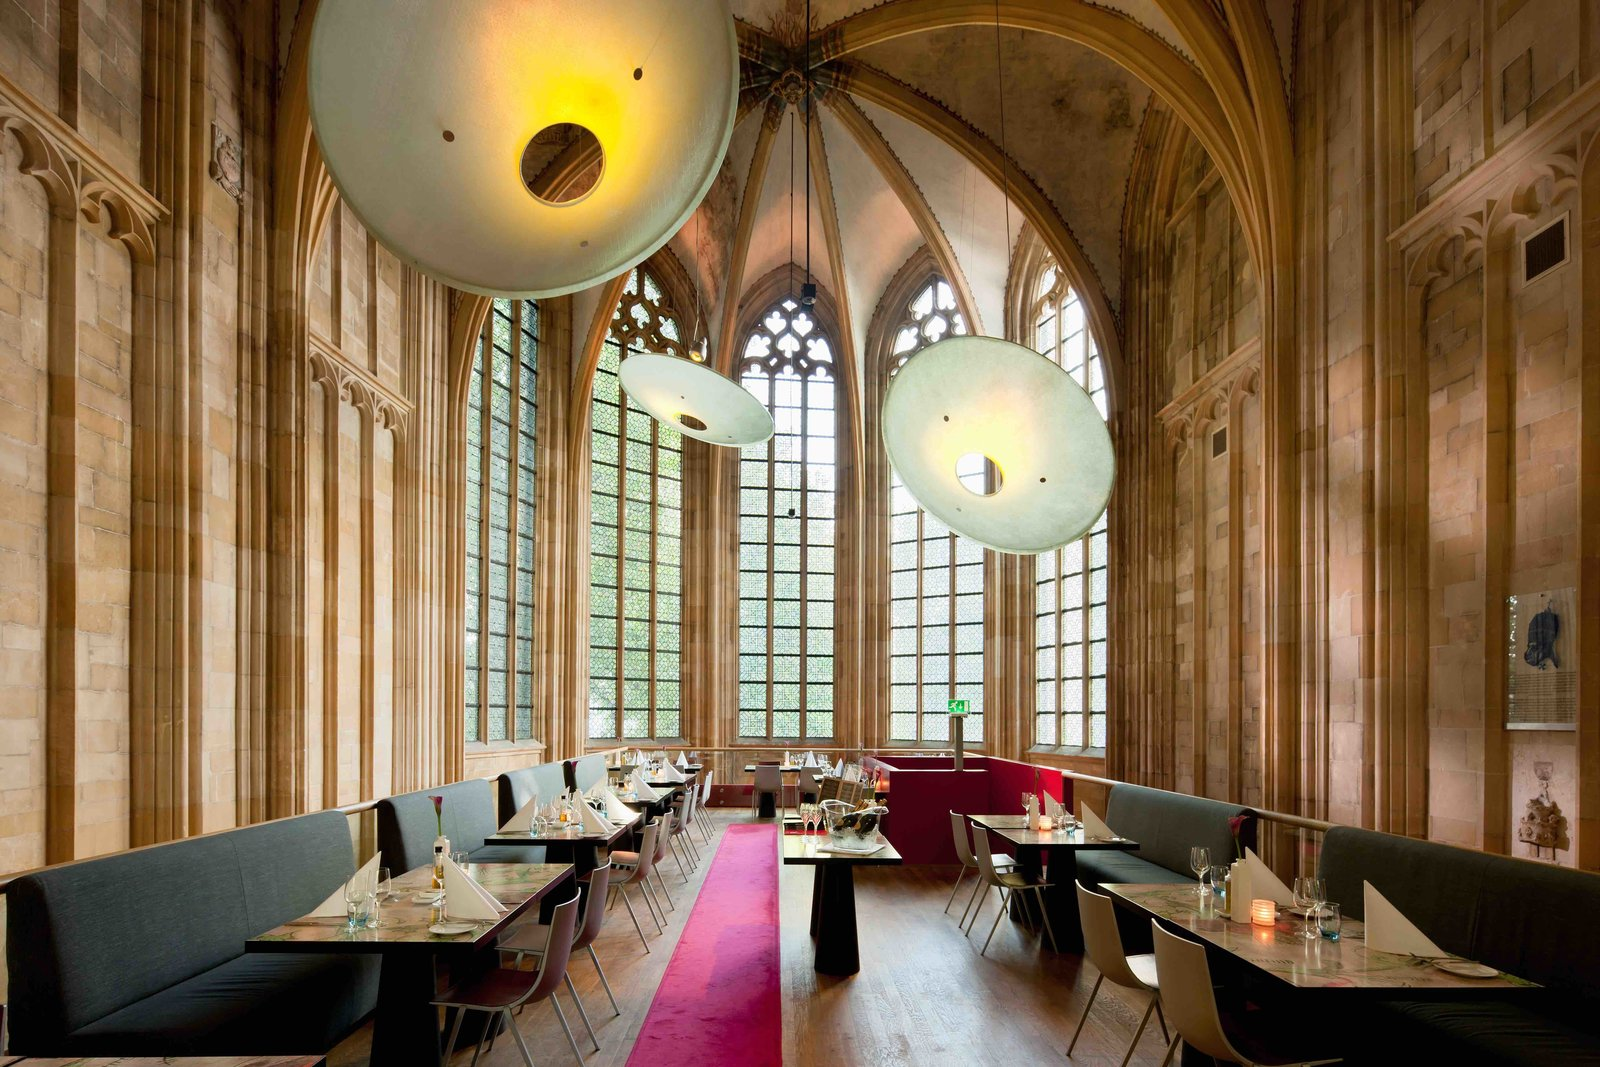 The interiors of Kruisherenhotel in Maastricht, the Netherlands  Photo 20 of 24 in 12 Modern Hotels in Historic Buildings Around the World